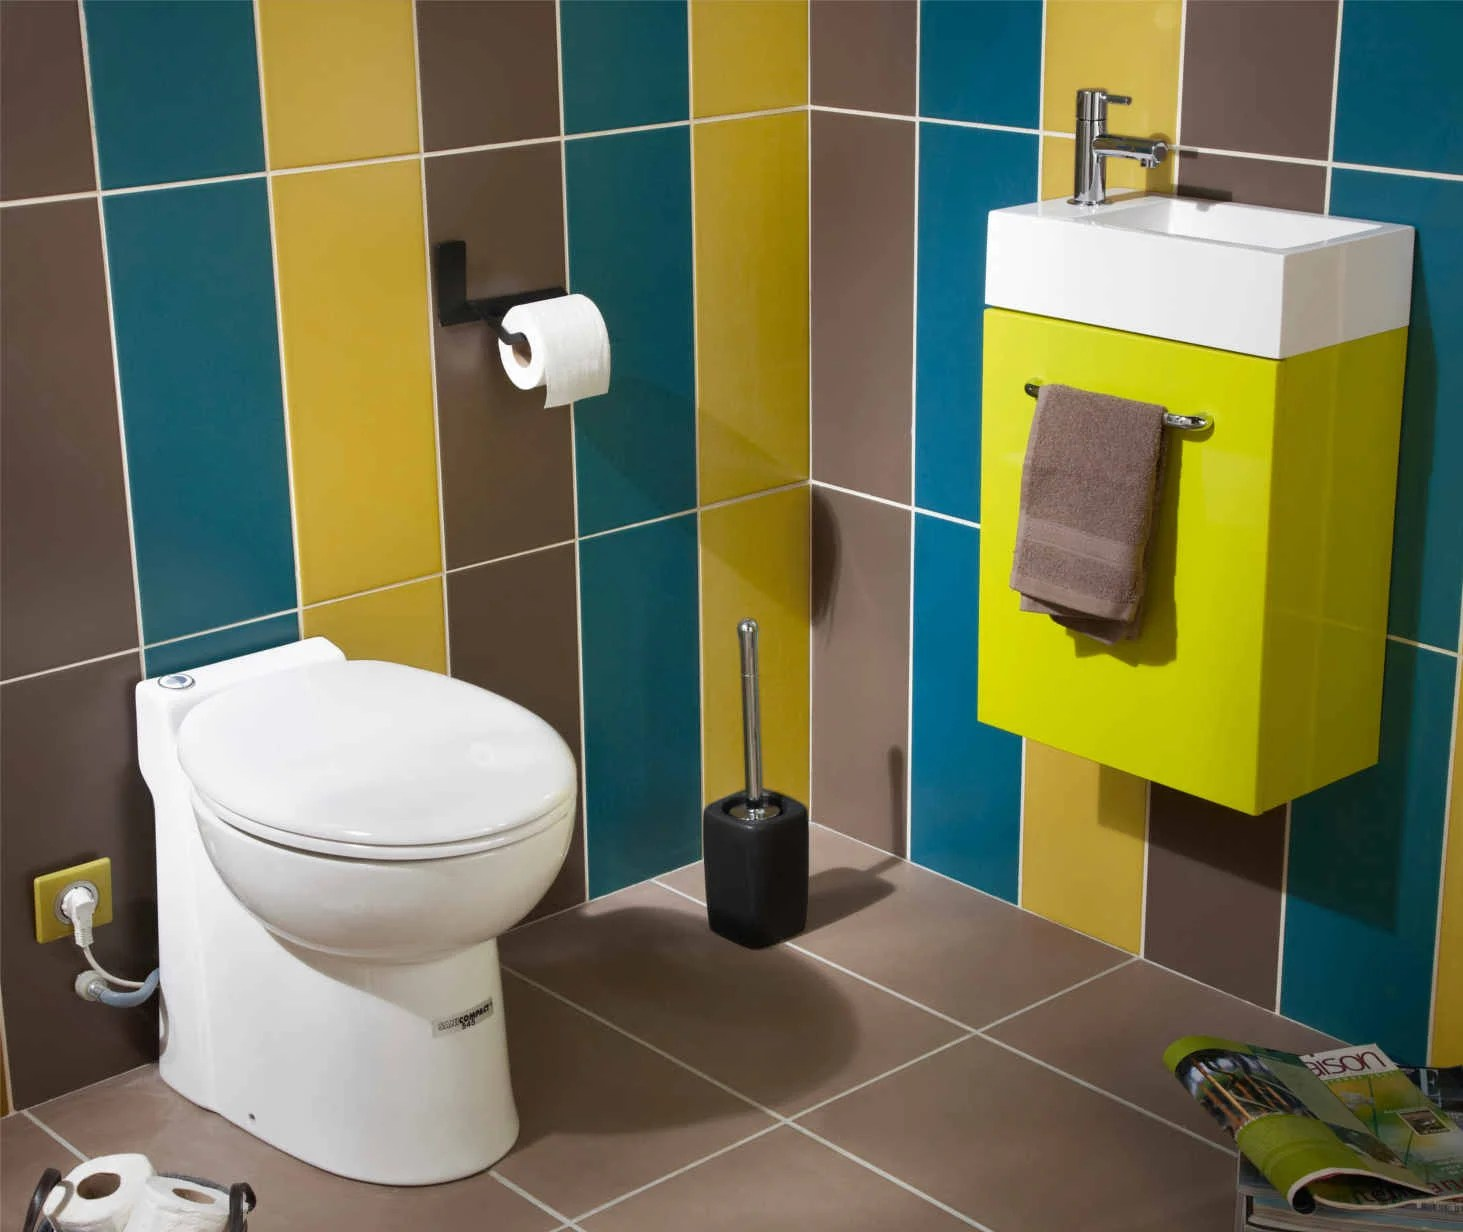 Abattant Wc Leroy Merlin Comment Choisir Son Wc Broyeur ? | Leroy Merlin